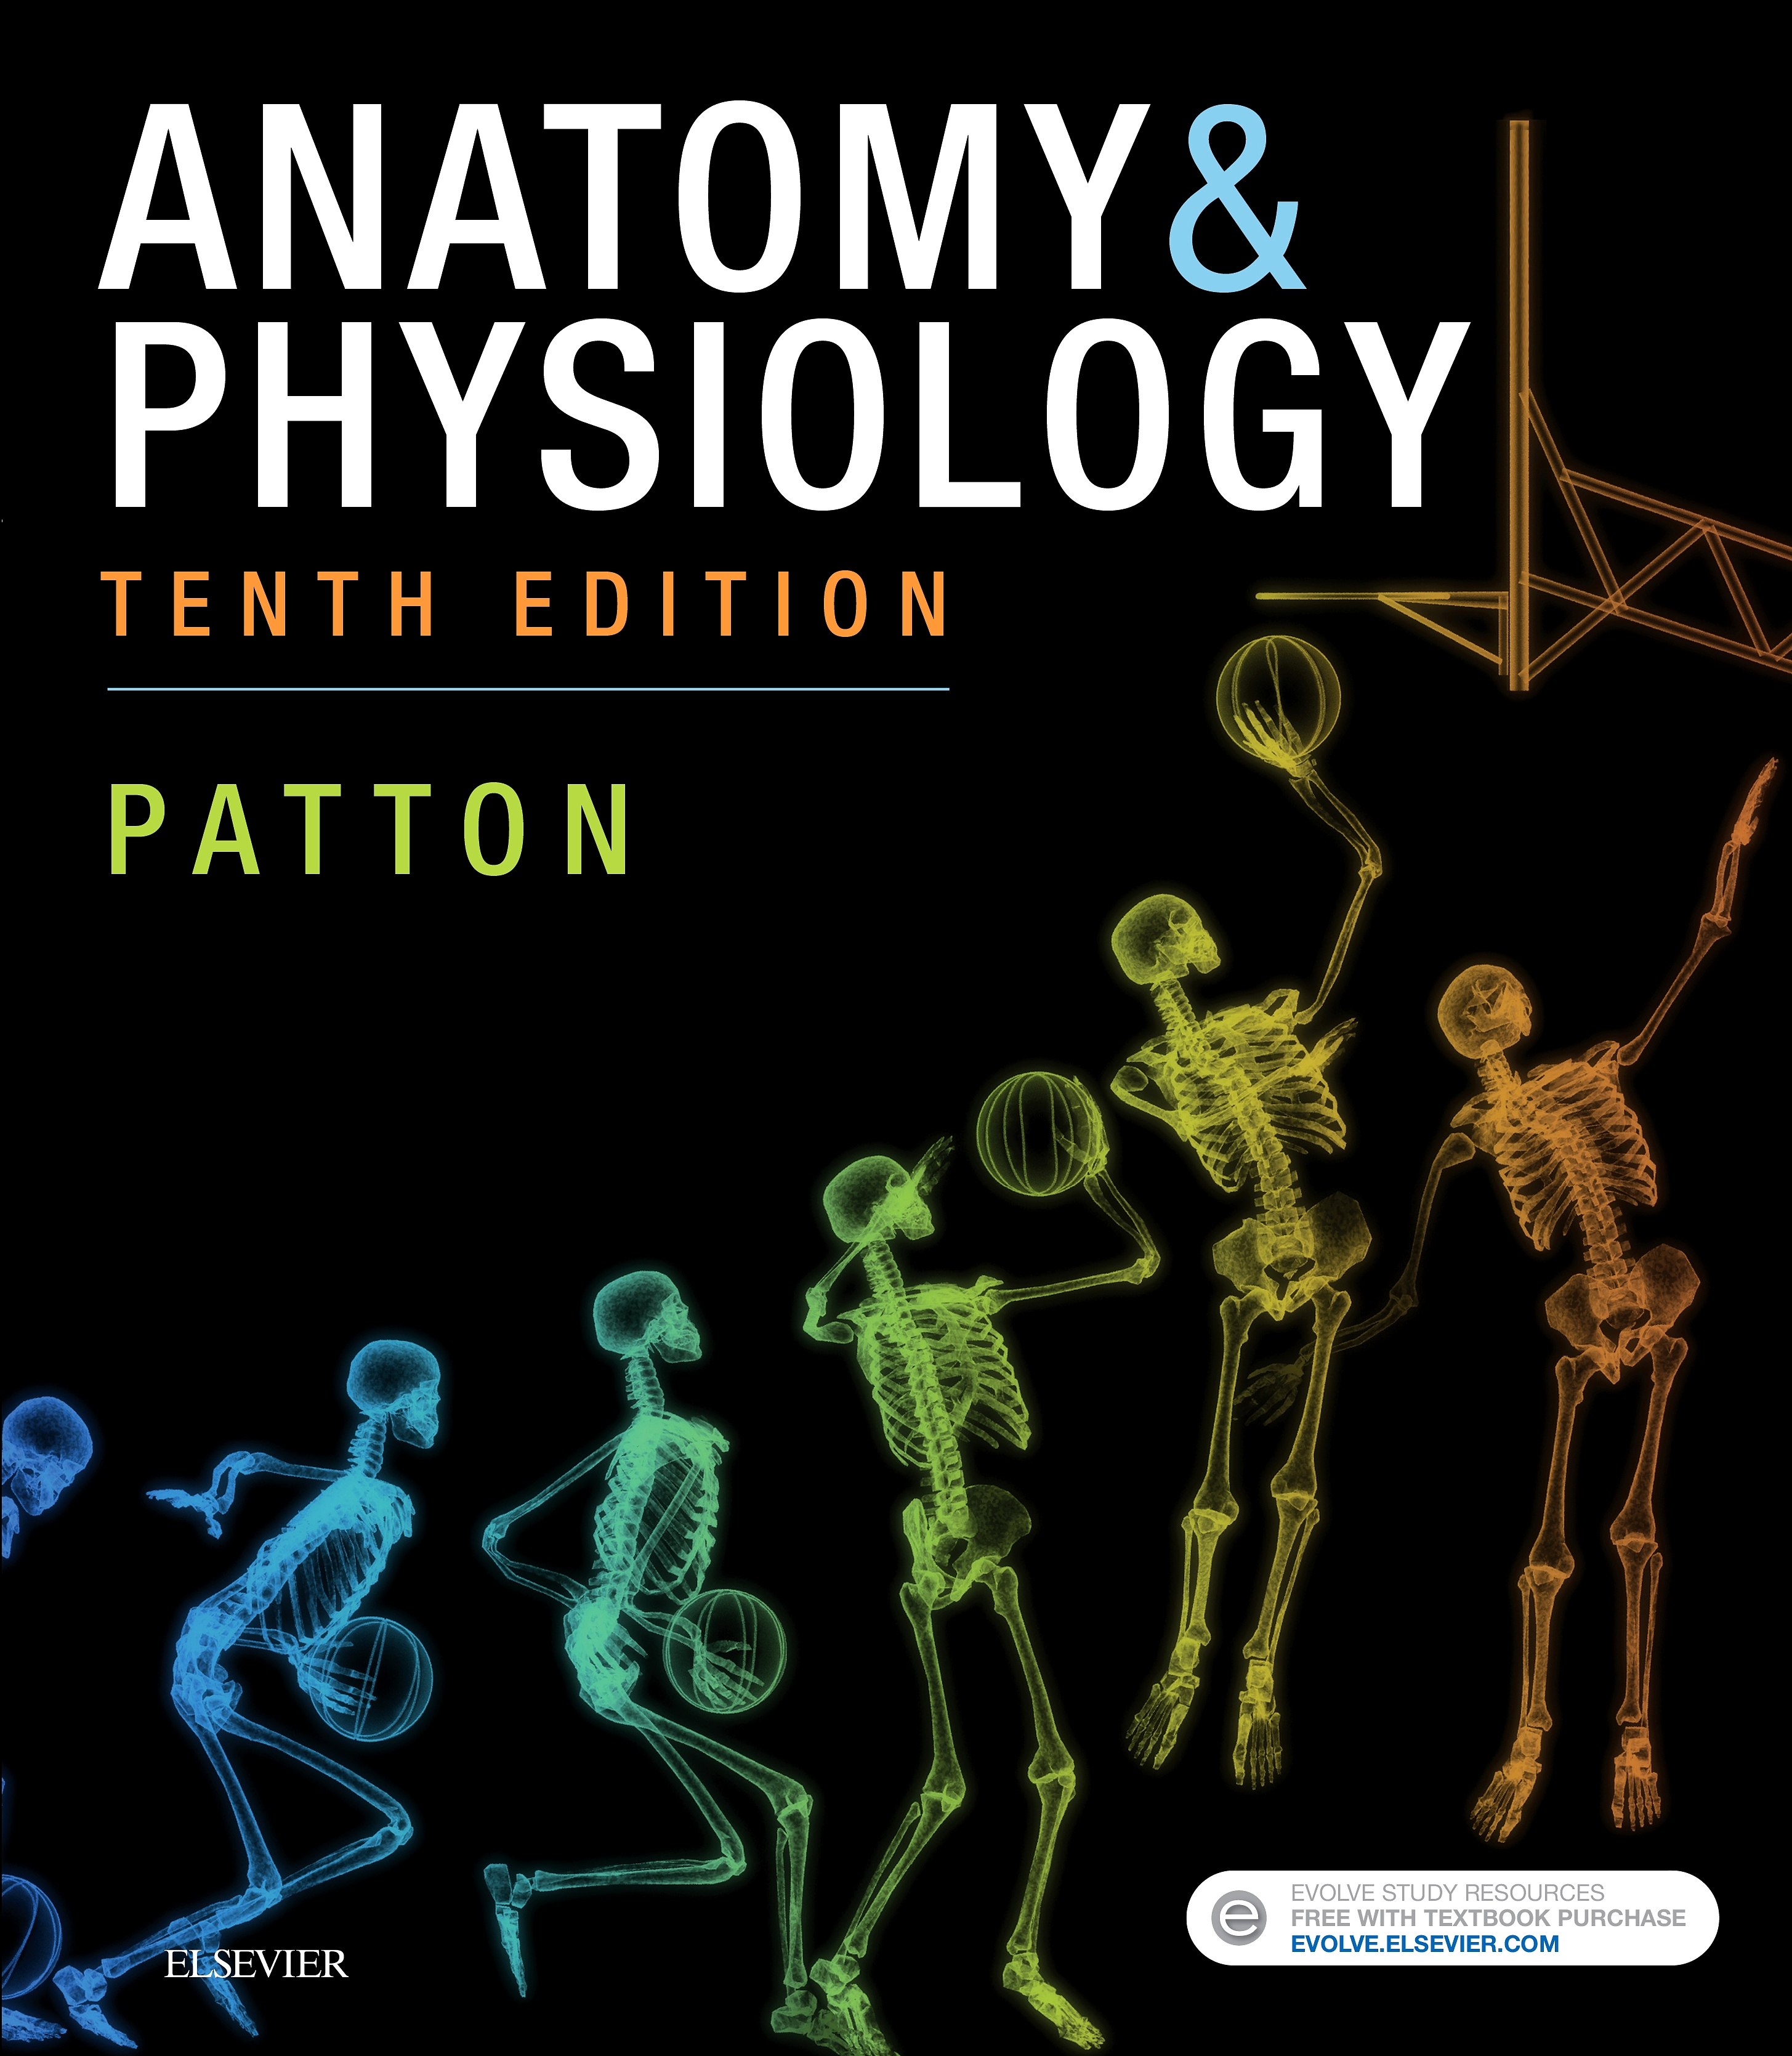 Evolve Resources for Anatomy & Physiology, 10th Edition